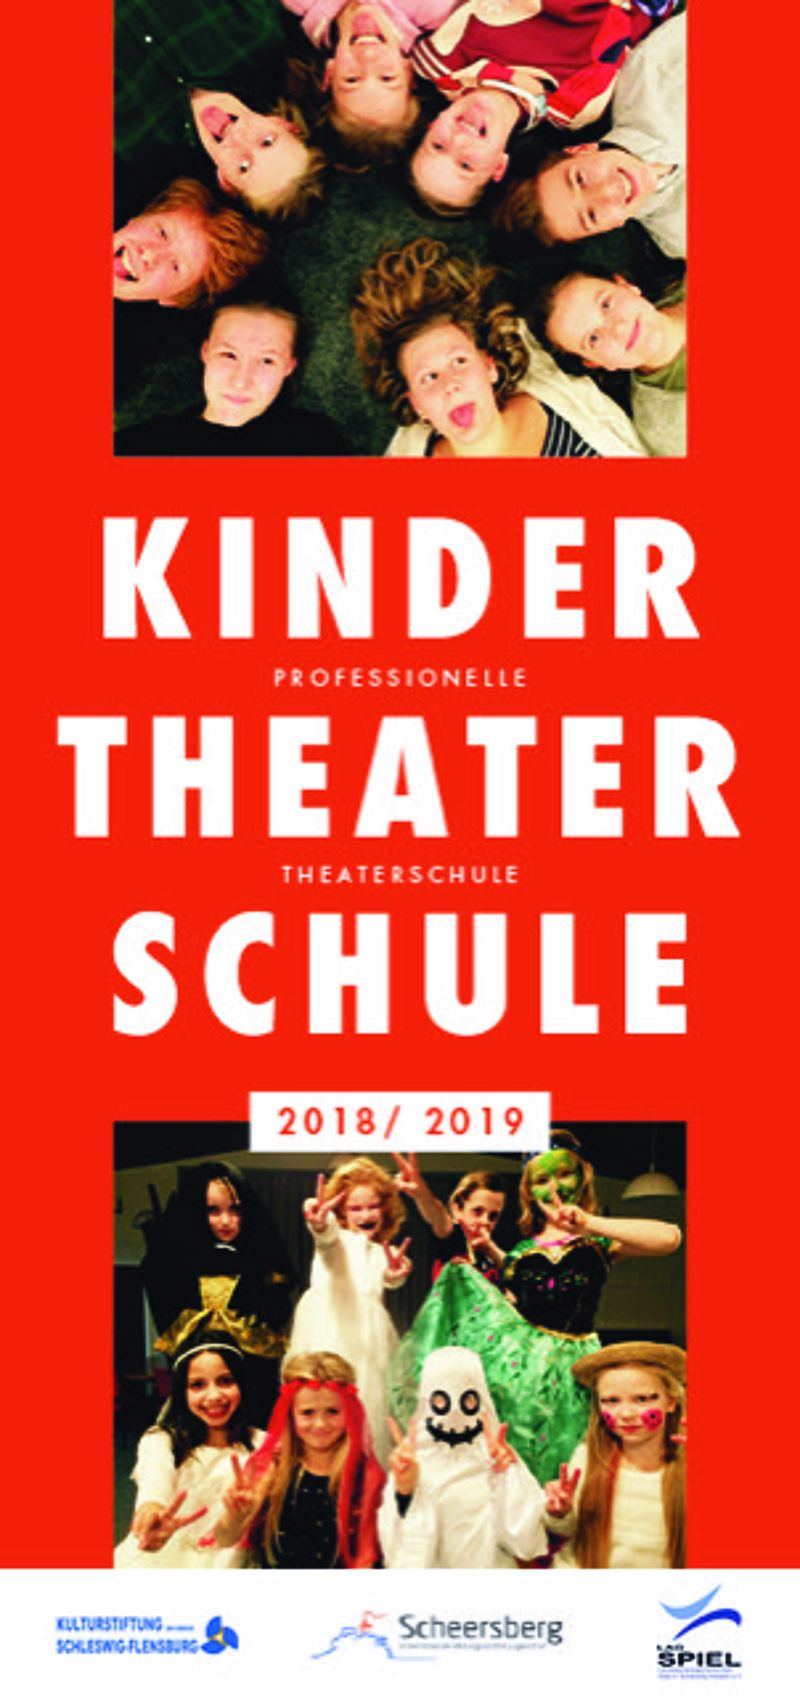 Kindertheaterschule 2018/2019